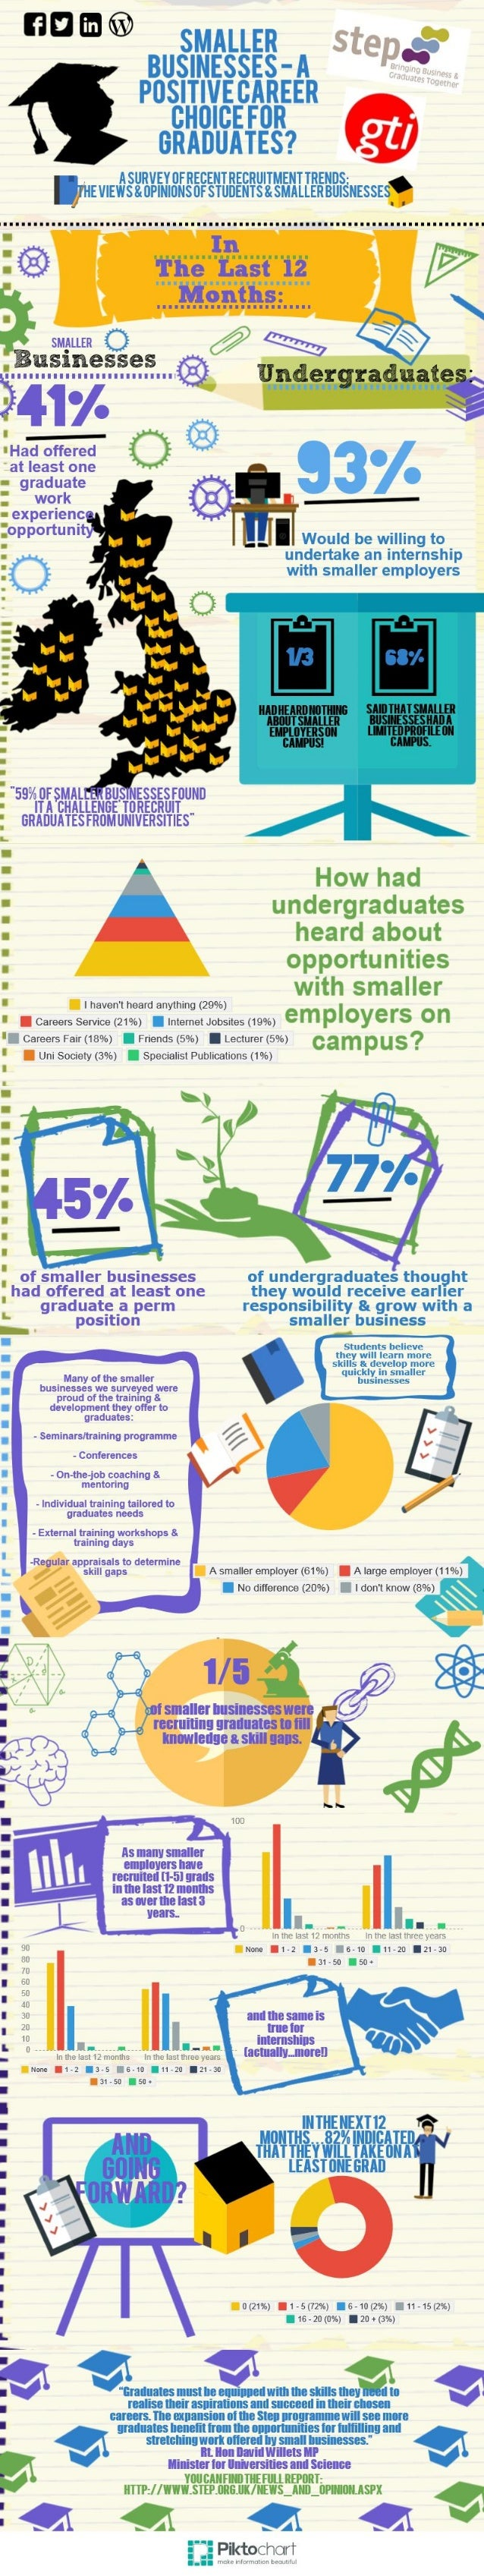 Smaller businesses - A positive career choice for graduates?